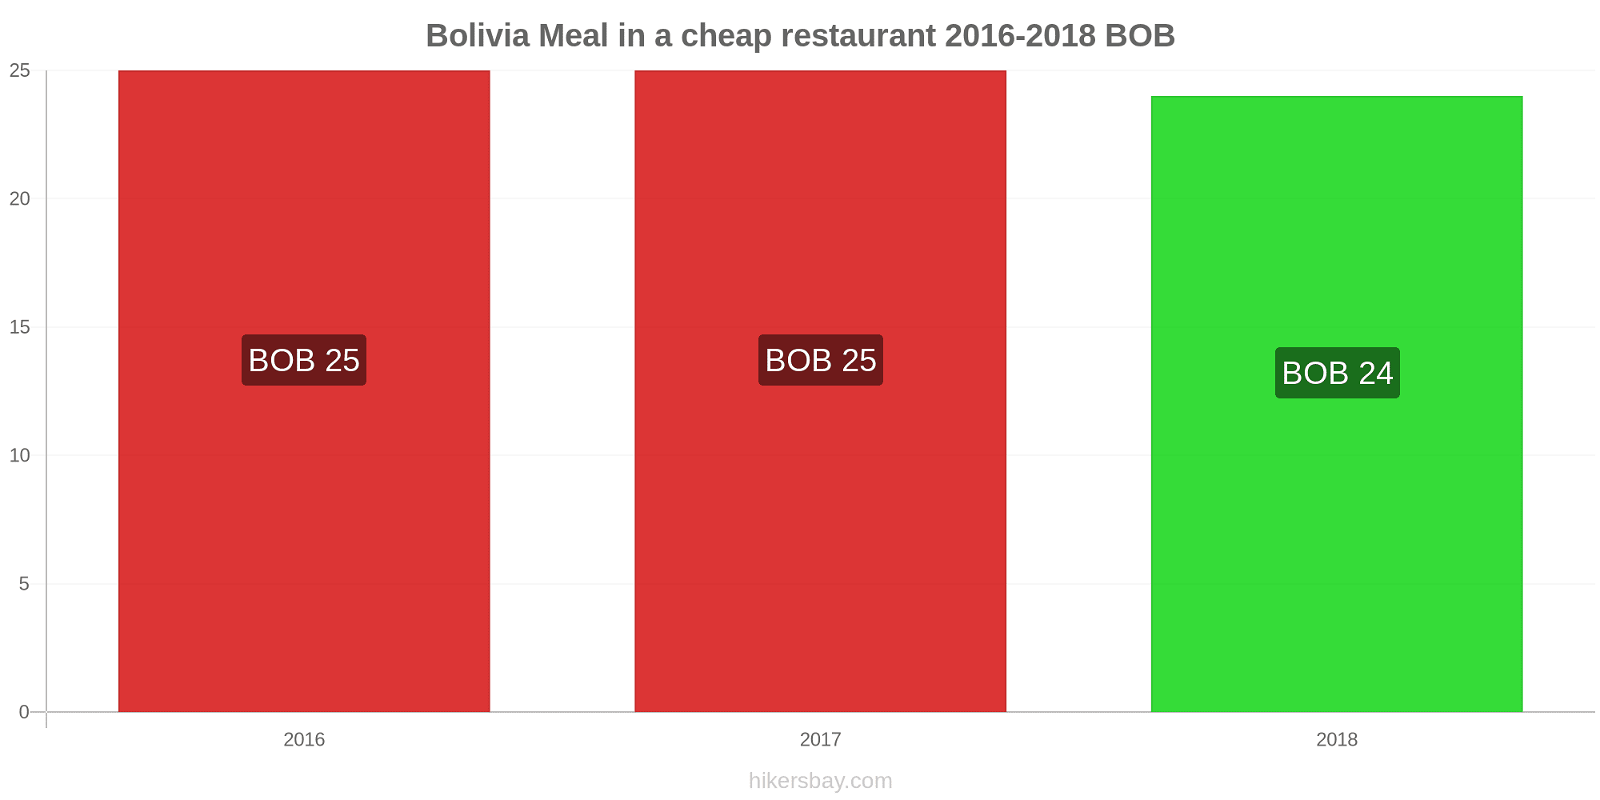 Bolivia price changes Meal in a cheap restaurant hikersbay.com